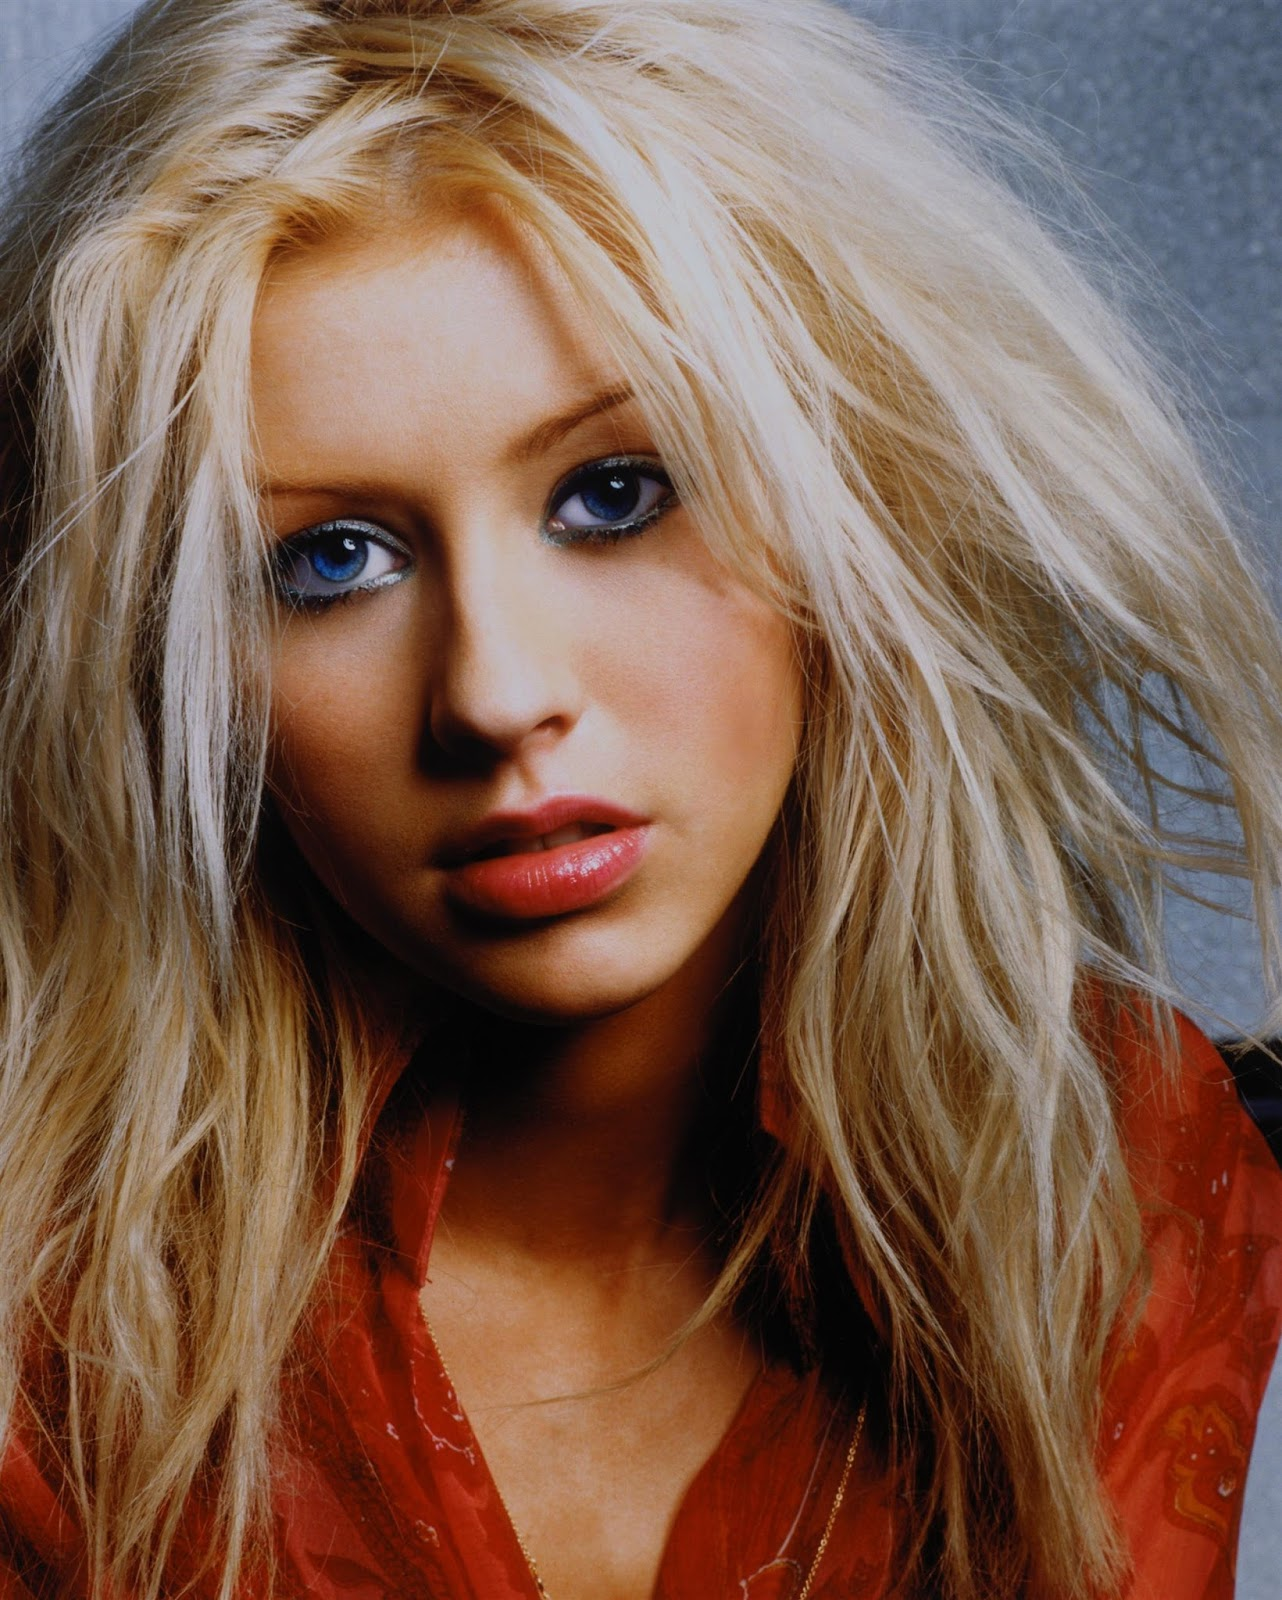 Actress and Celebrity Pictures: Pictures of Christina Aguilera Christina Aguilera